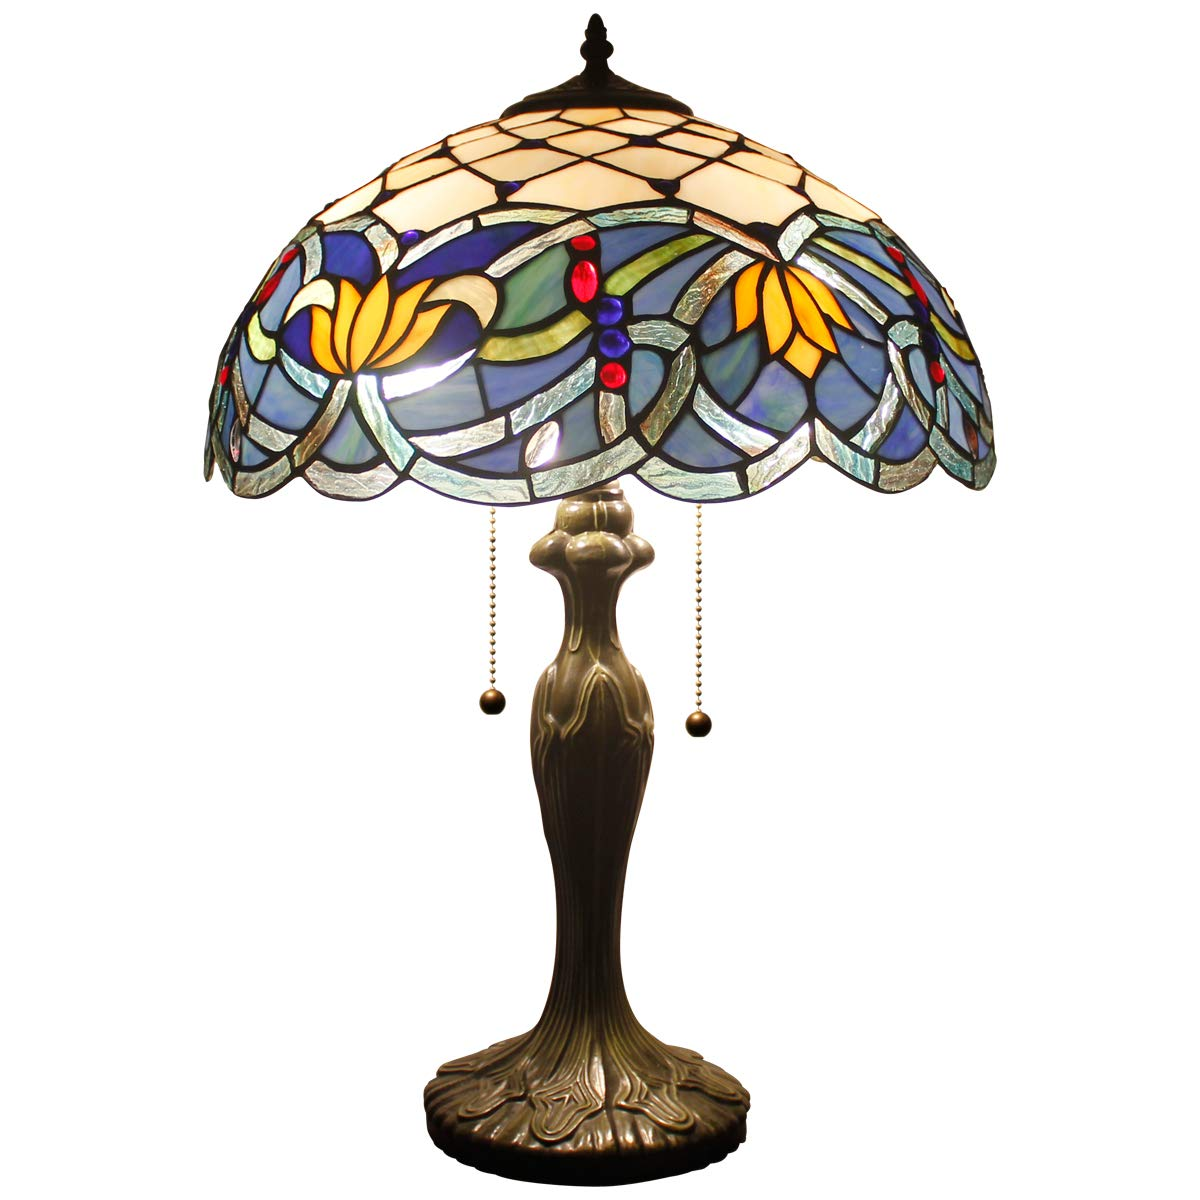 Tiffany Table Lamps Blue Lotus Stained Glass Style Shade Zinc Base 2 Light 24 Inch Tall for Living Room Bedroom Coffee Table Reading Desk Beside Reading Set S220 WERFACTORY